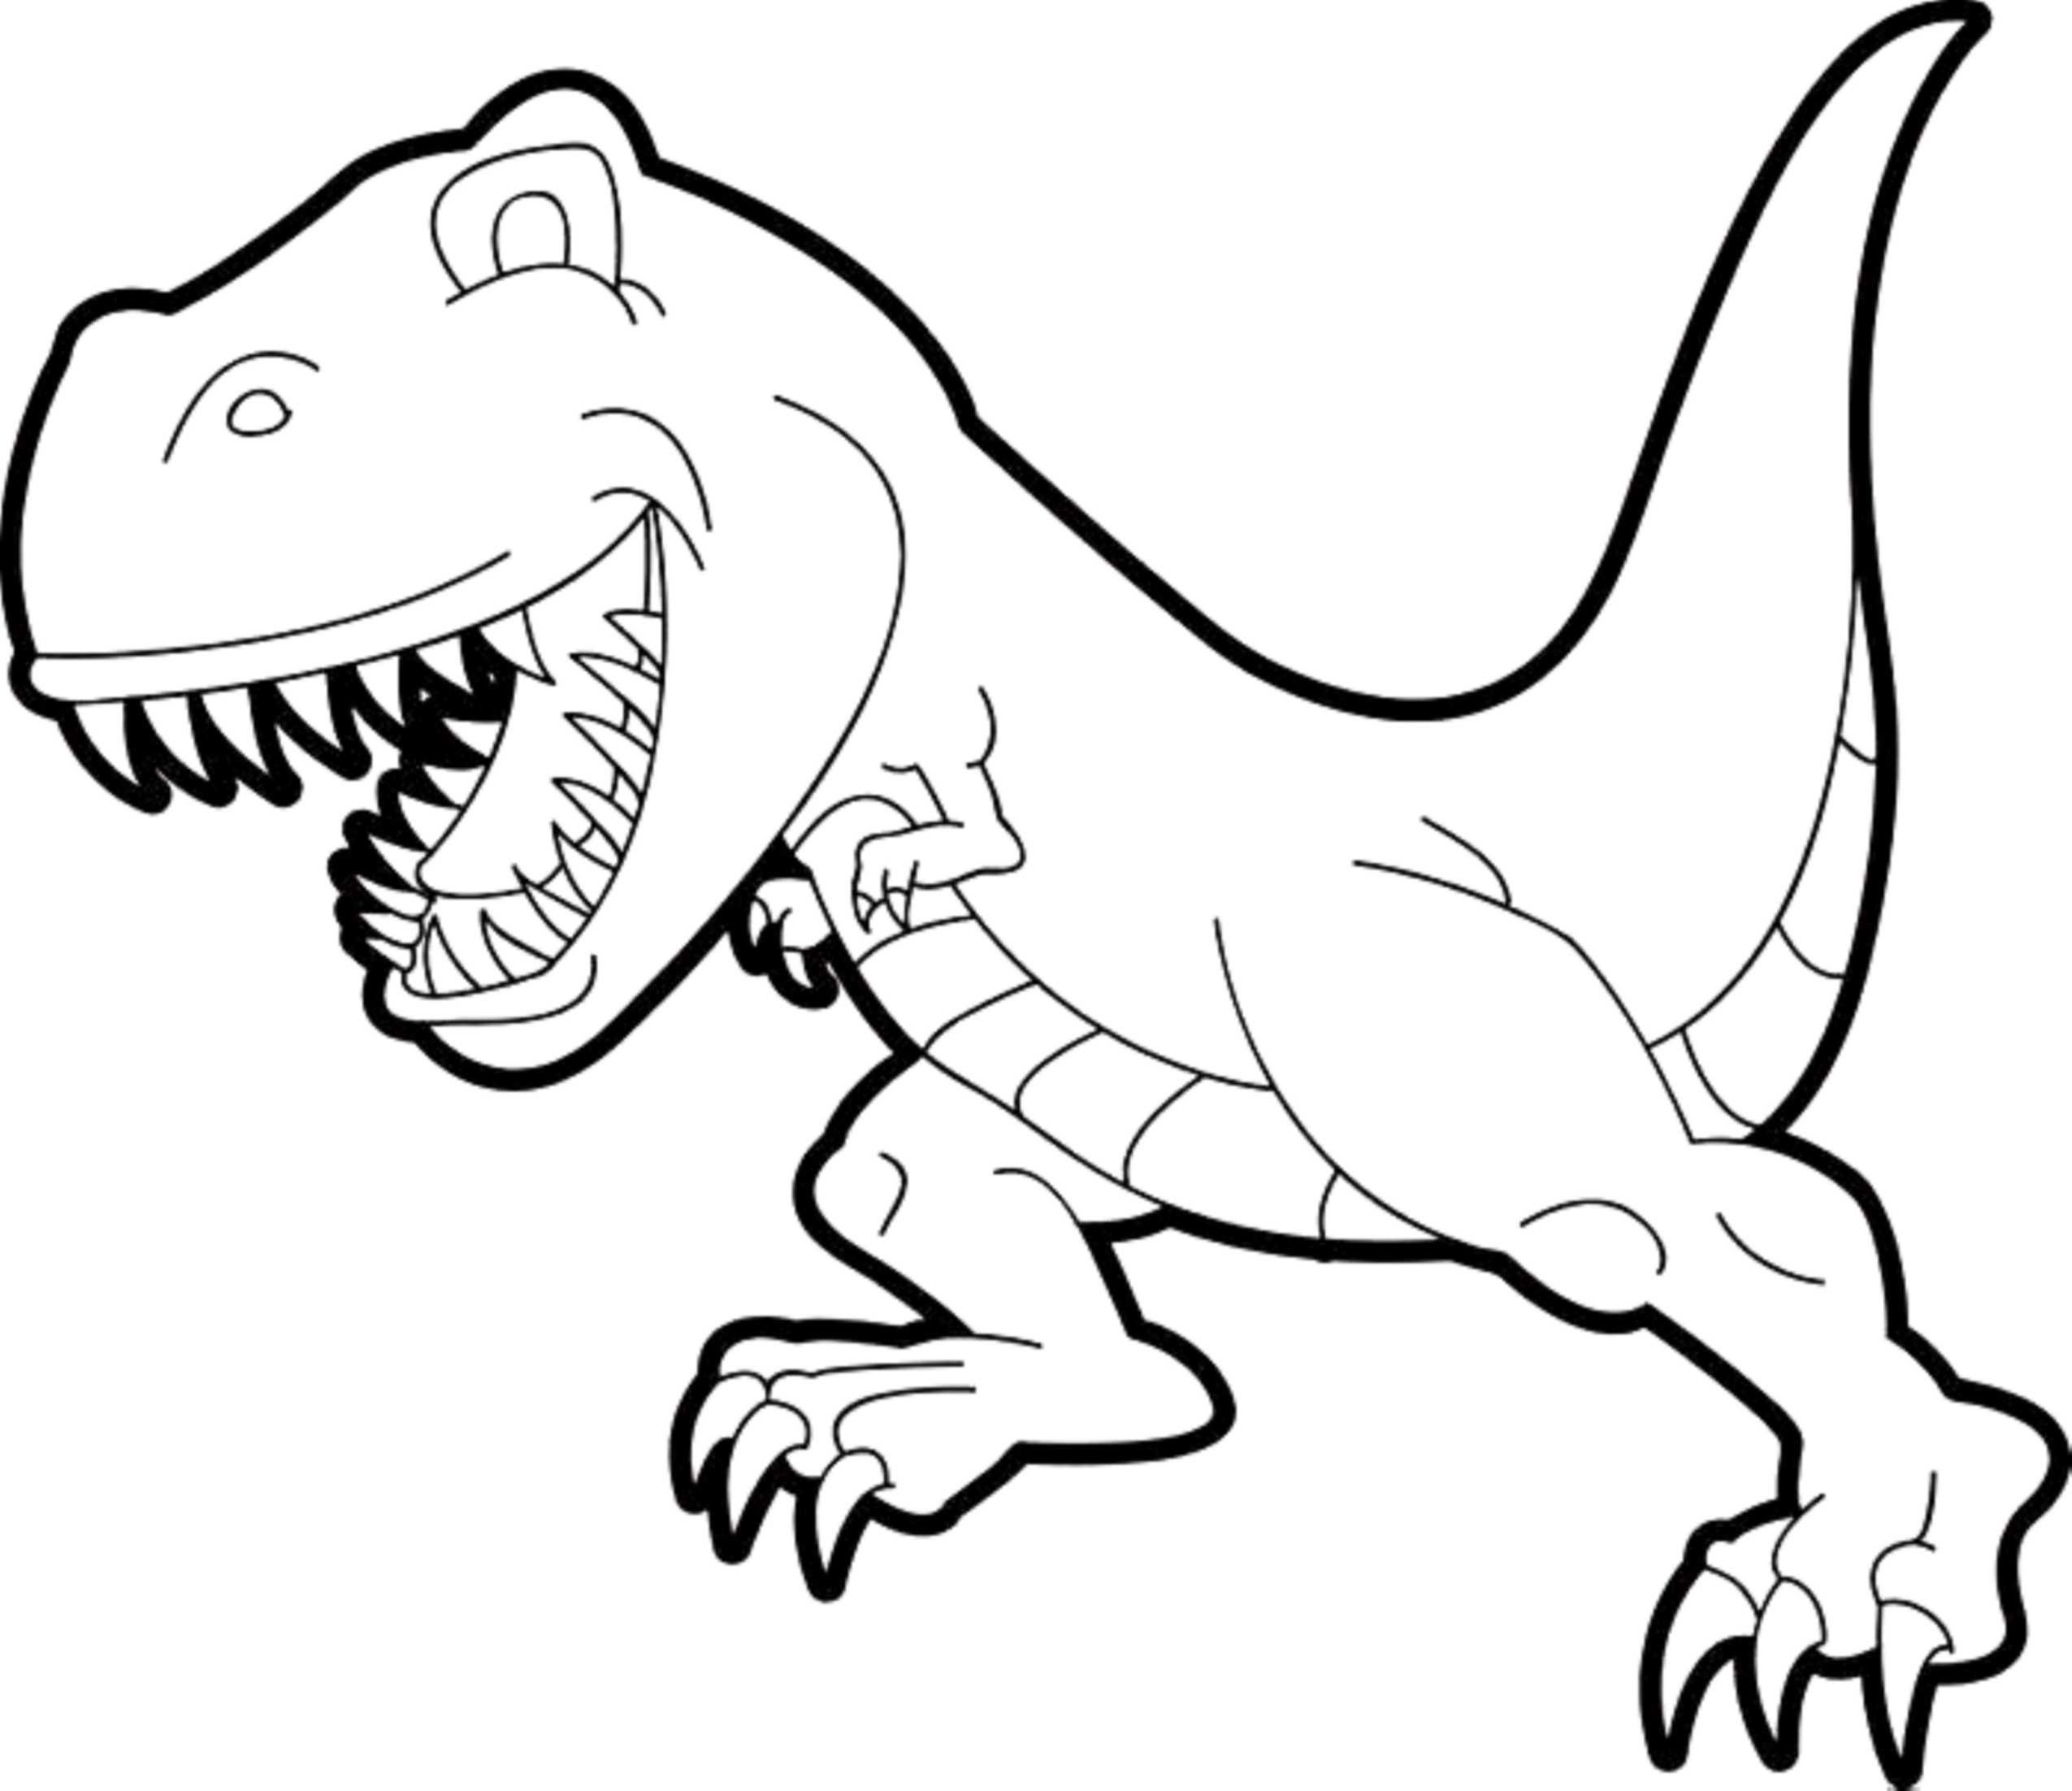 T Rex Face Coloring Page (With images) Dinosaur coloring